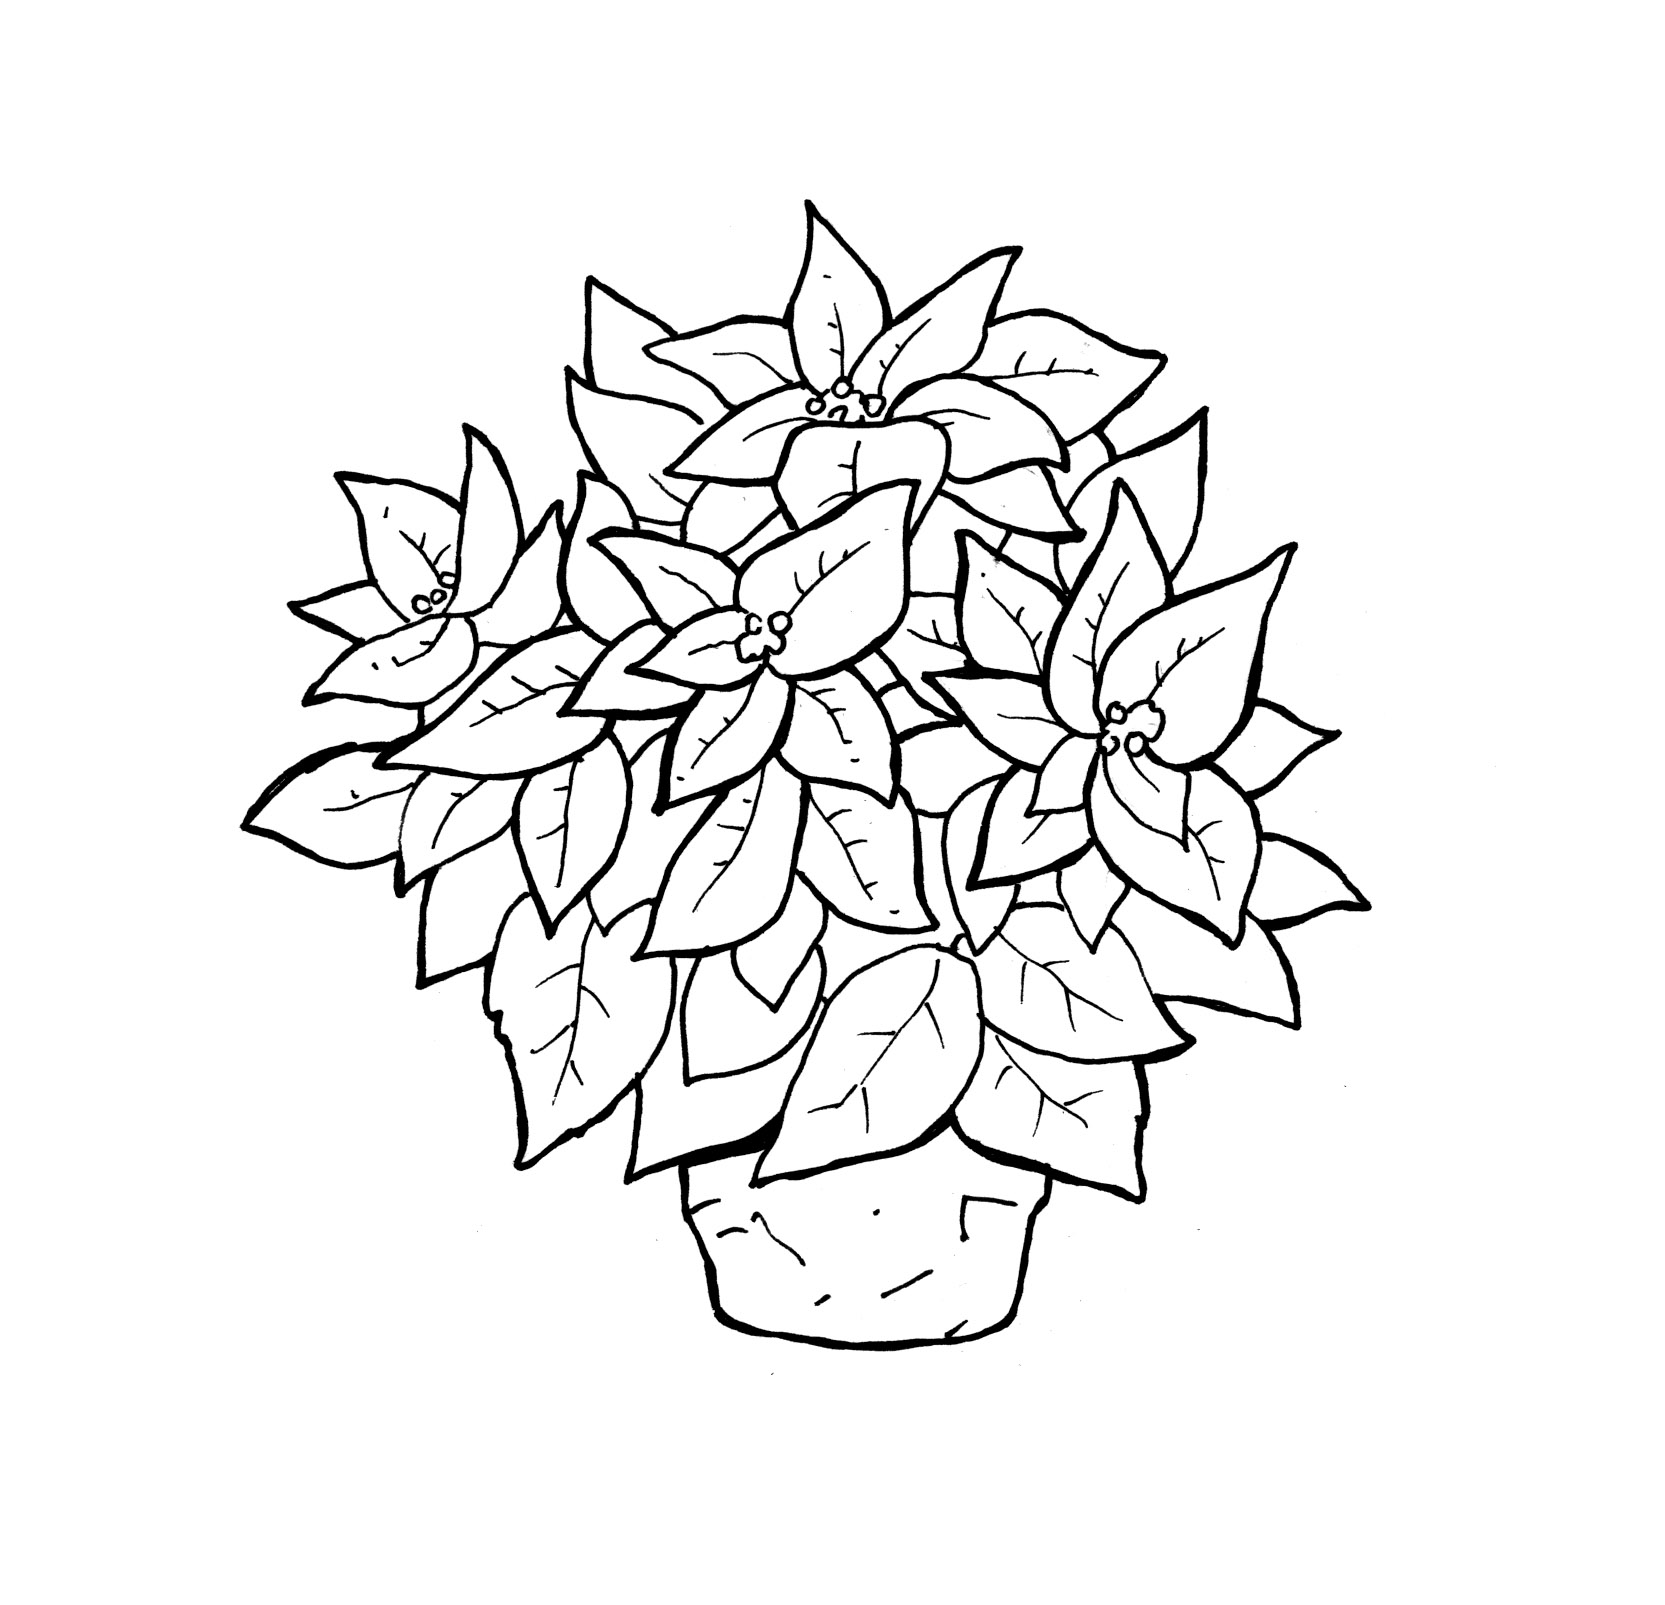 poinsetta coloring pages - photo#9